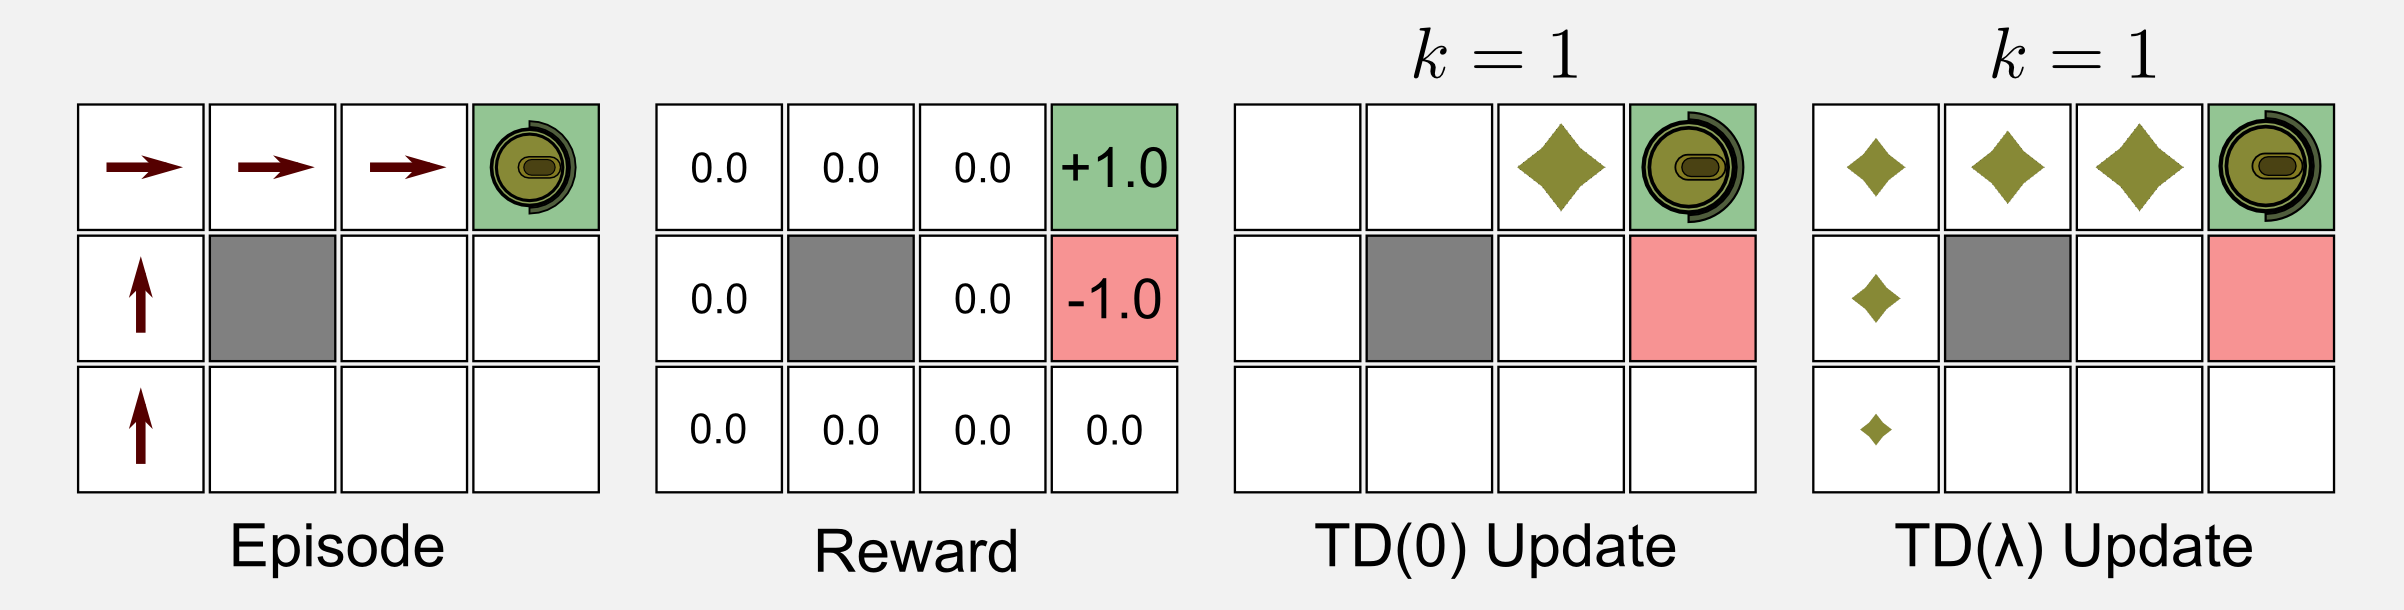 Reinforcement Learning TD(0) vs TD(lamda) update rule